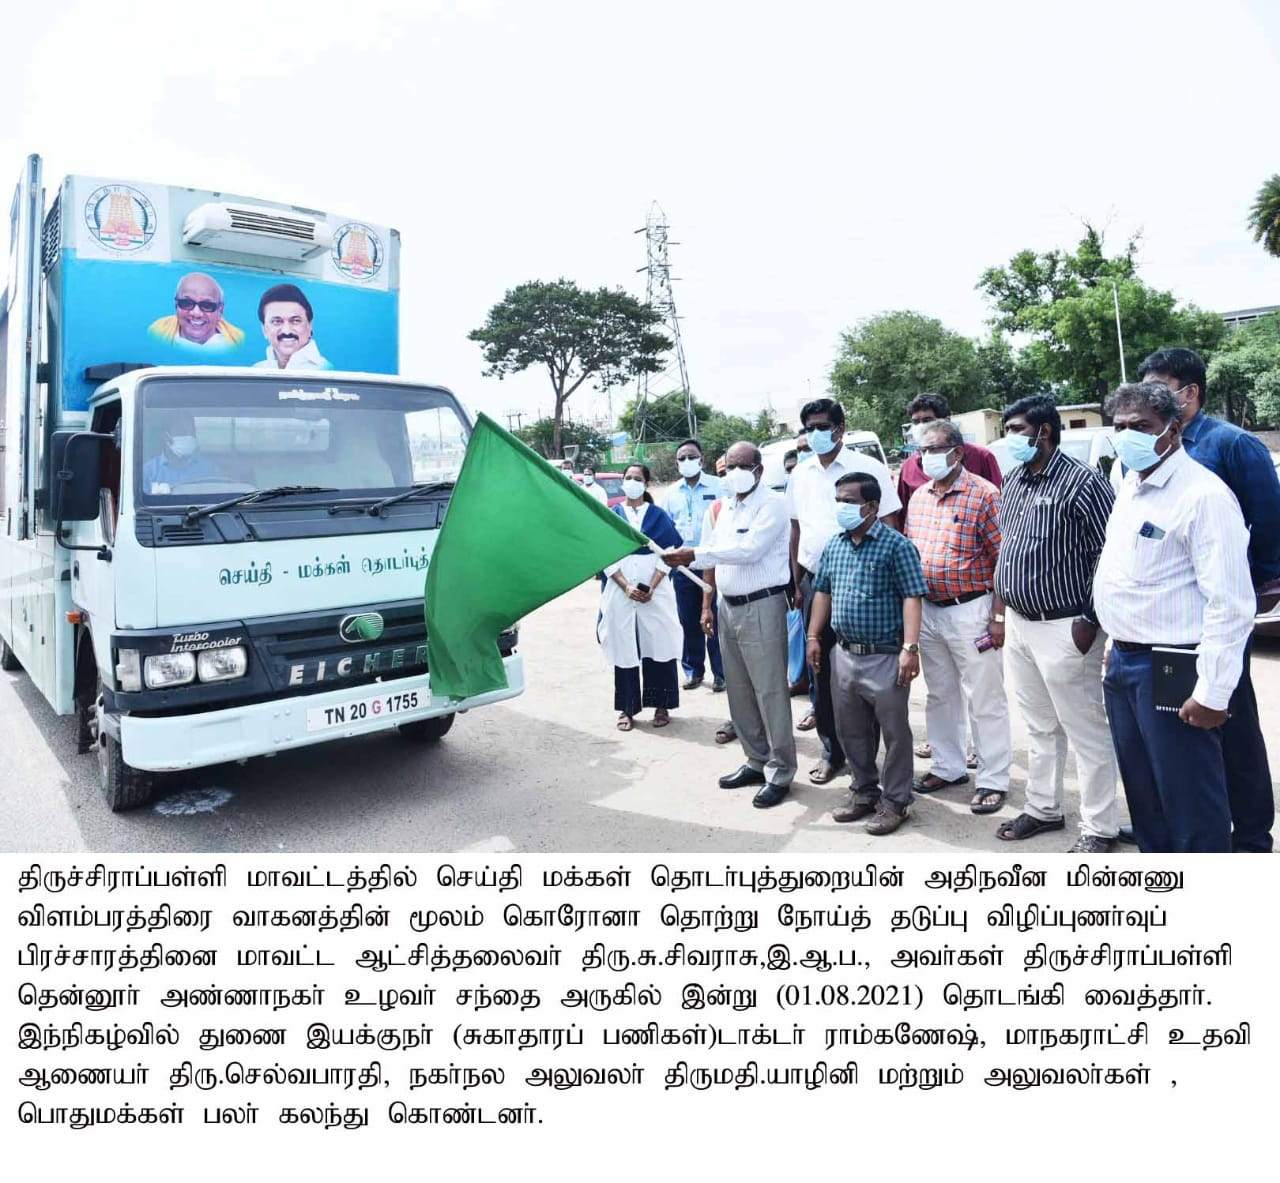 District Collector Started Covid Awarenessss Programme on 01-08-2021